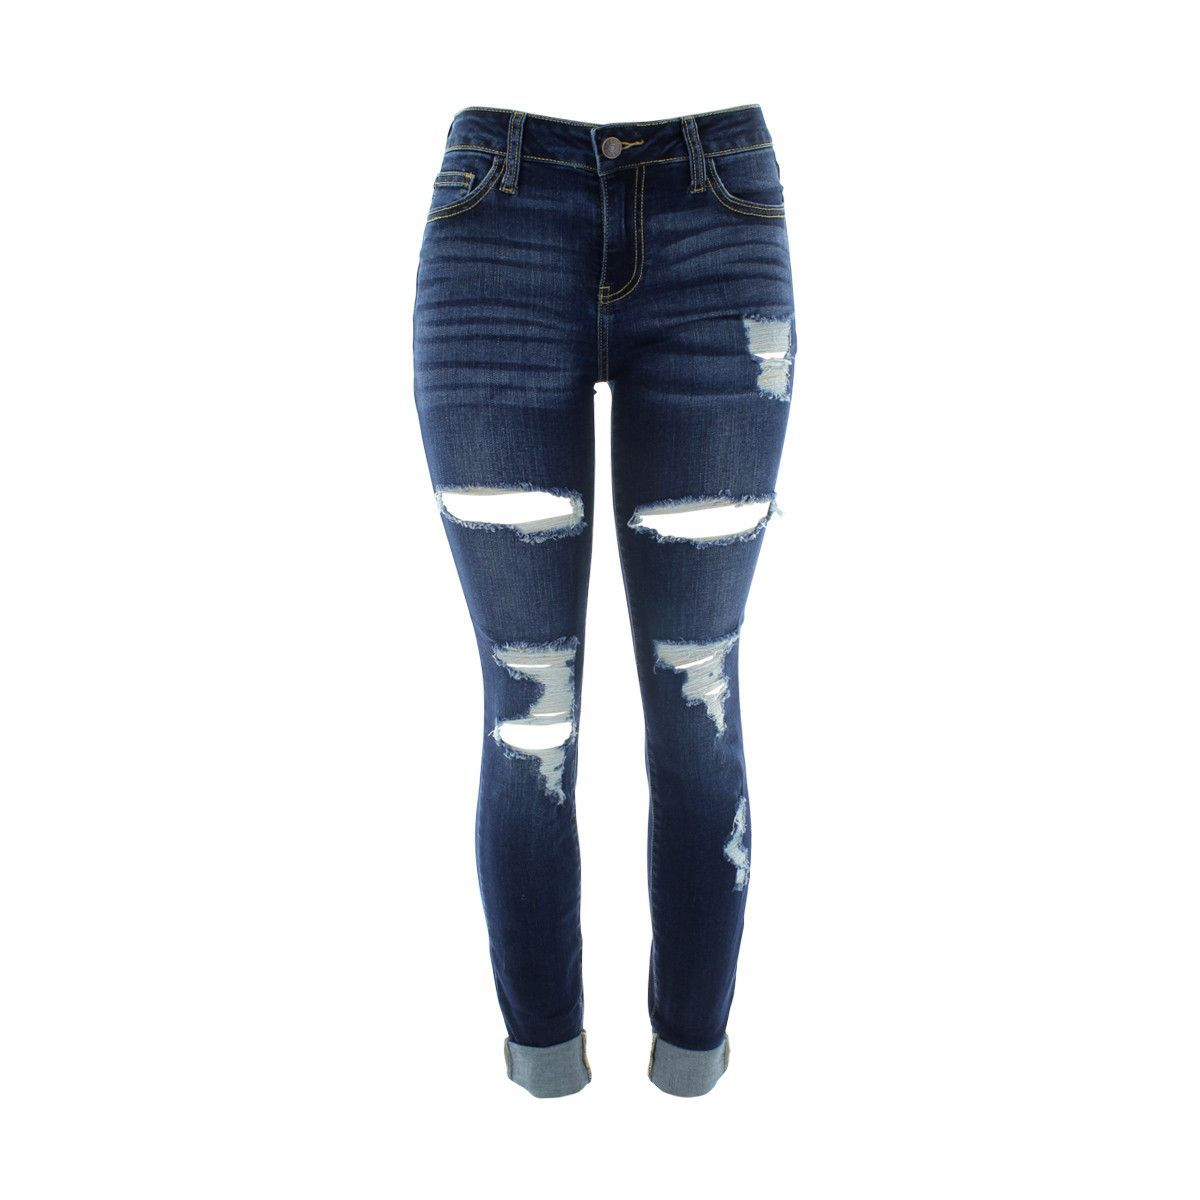 Cello Jeans - Women's Rips Holes Midrise Roll Cuff Skinny Jeans ...